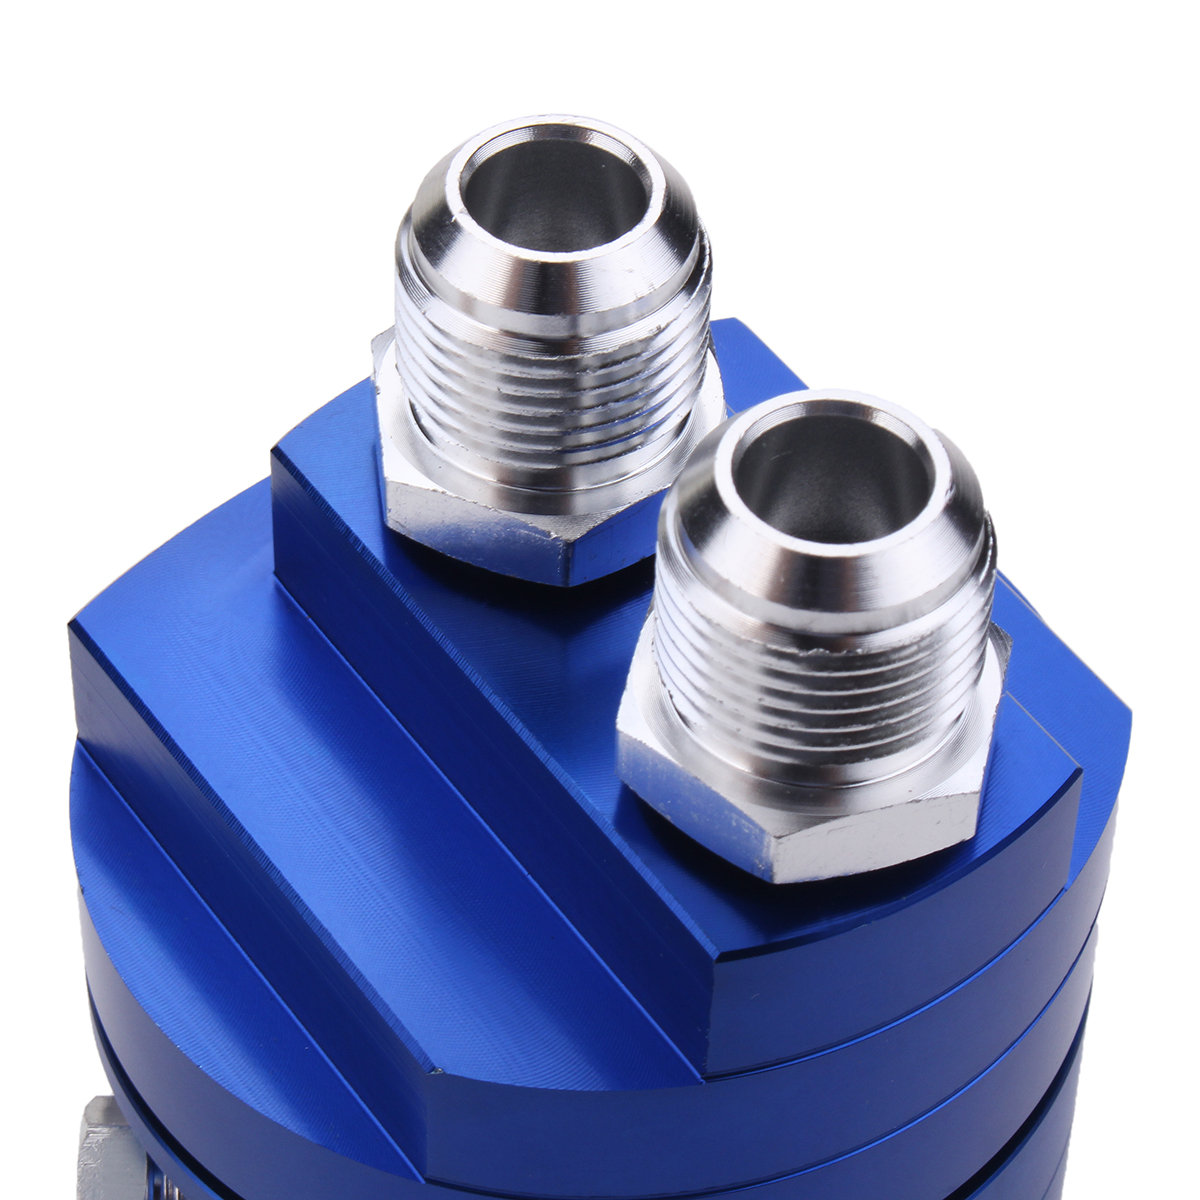 2Pcs Oil Filter Relocation Male Sandwich Fitting Adapter Kit 3/4X16 20X1.5